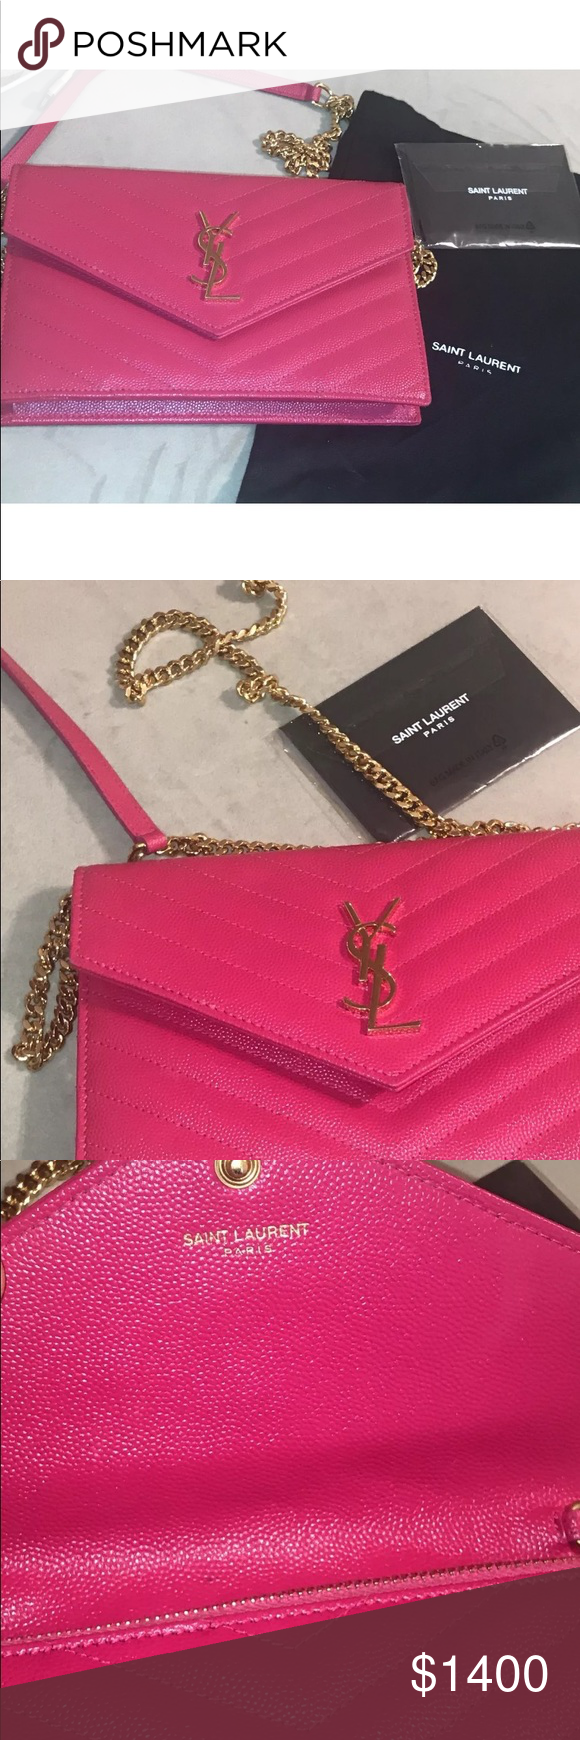 29cb14c31b New-Authentic YSL New-Authentic-Yves-Saint-Laurent-Ysl-Monogram-Chain-Wallet-Cross  Body -Bag-Pink New with tag and dust bag Yves Saint Laurent Bags ...